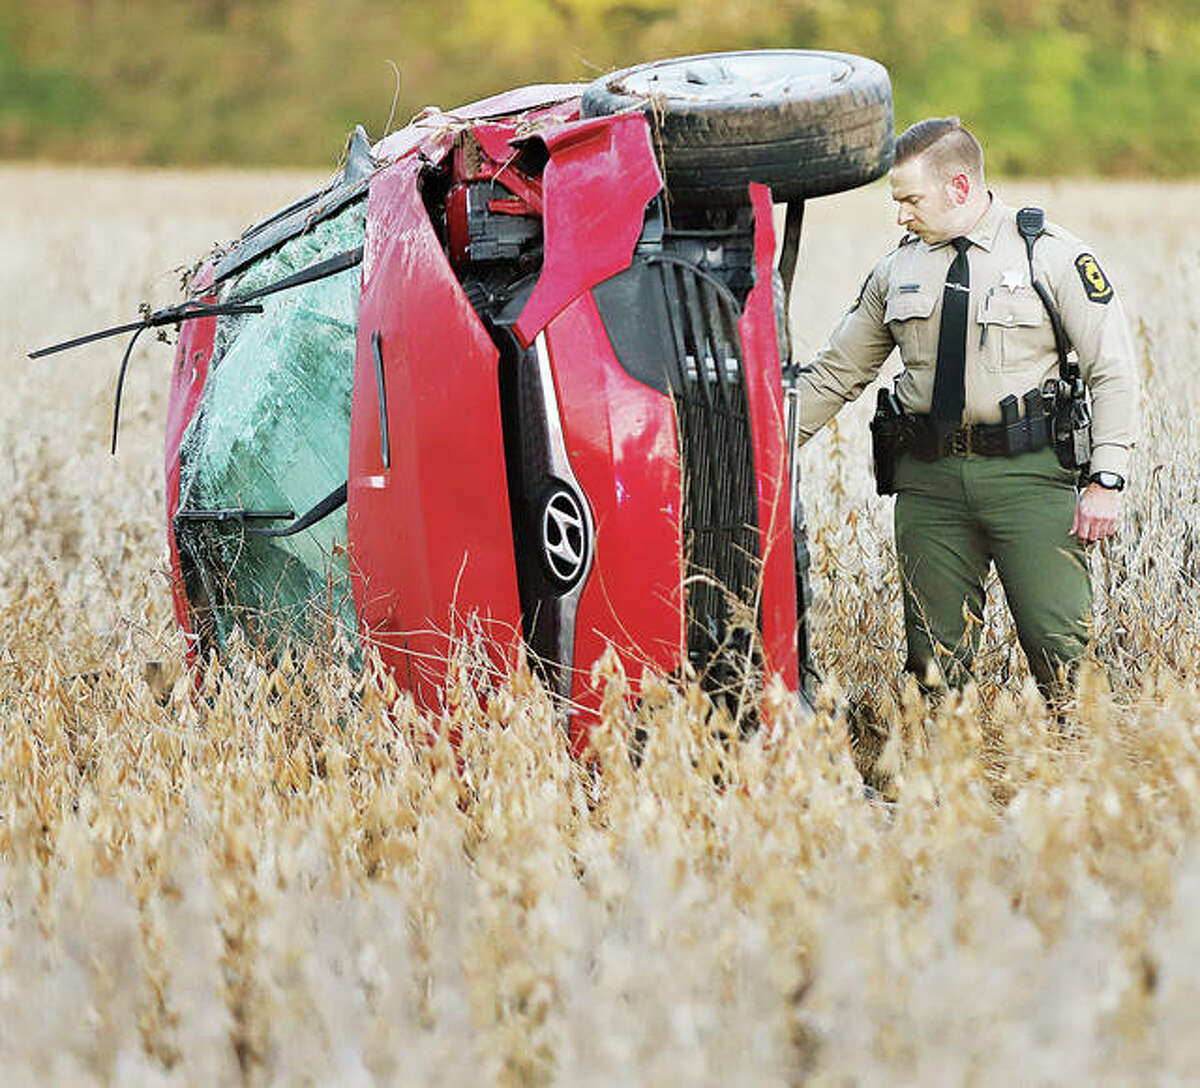 An Illinois State Police trooper examines the underside of a Hyundai as it lays on its side in a soybean field early Tuesday off Fosterburg Road, south of Emma Kaus Lane in Alton. A female was apparently ejected from the vehicle after it rolled over in a crash during the night and was not found until daybreak around 6:25 a.m. The woman's body was found laying in the field about 30 feet away.